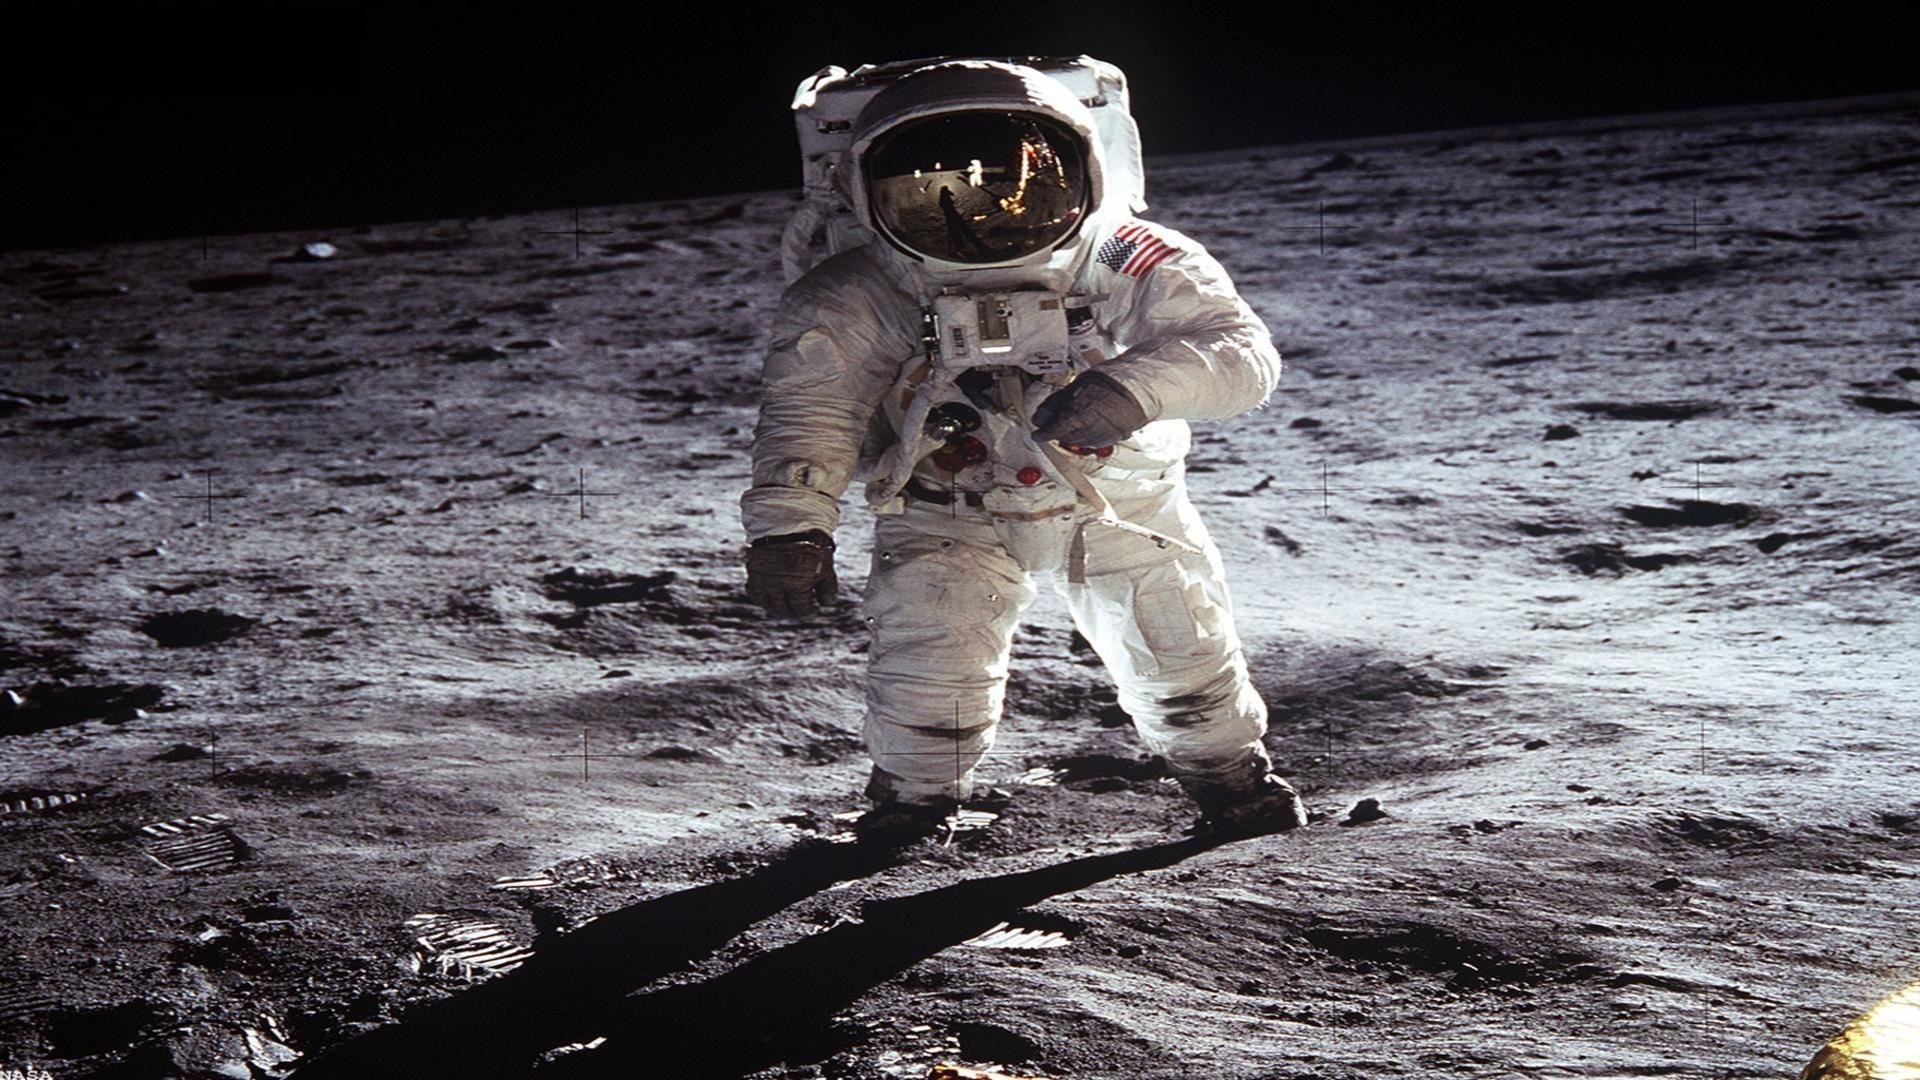 apollo missions wallpaper - photo #13